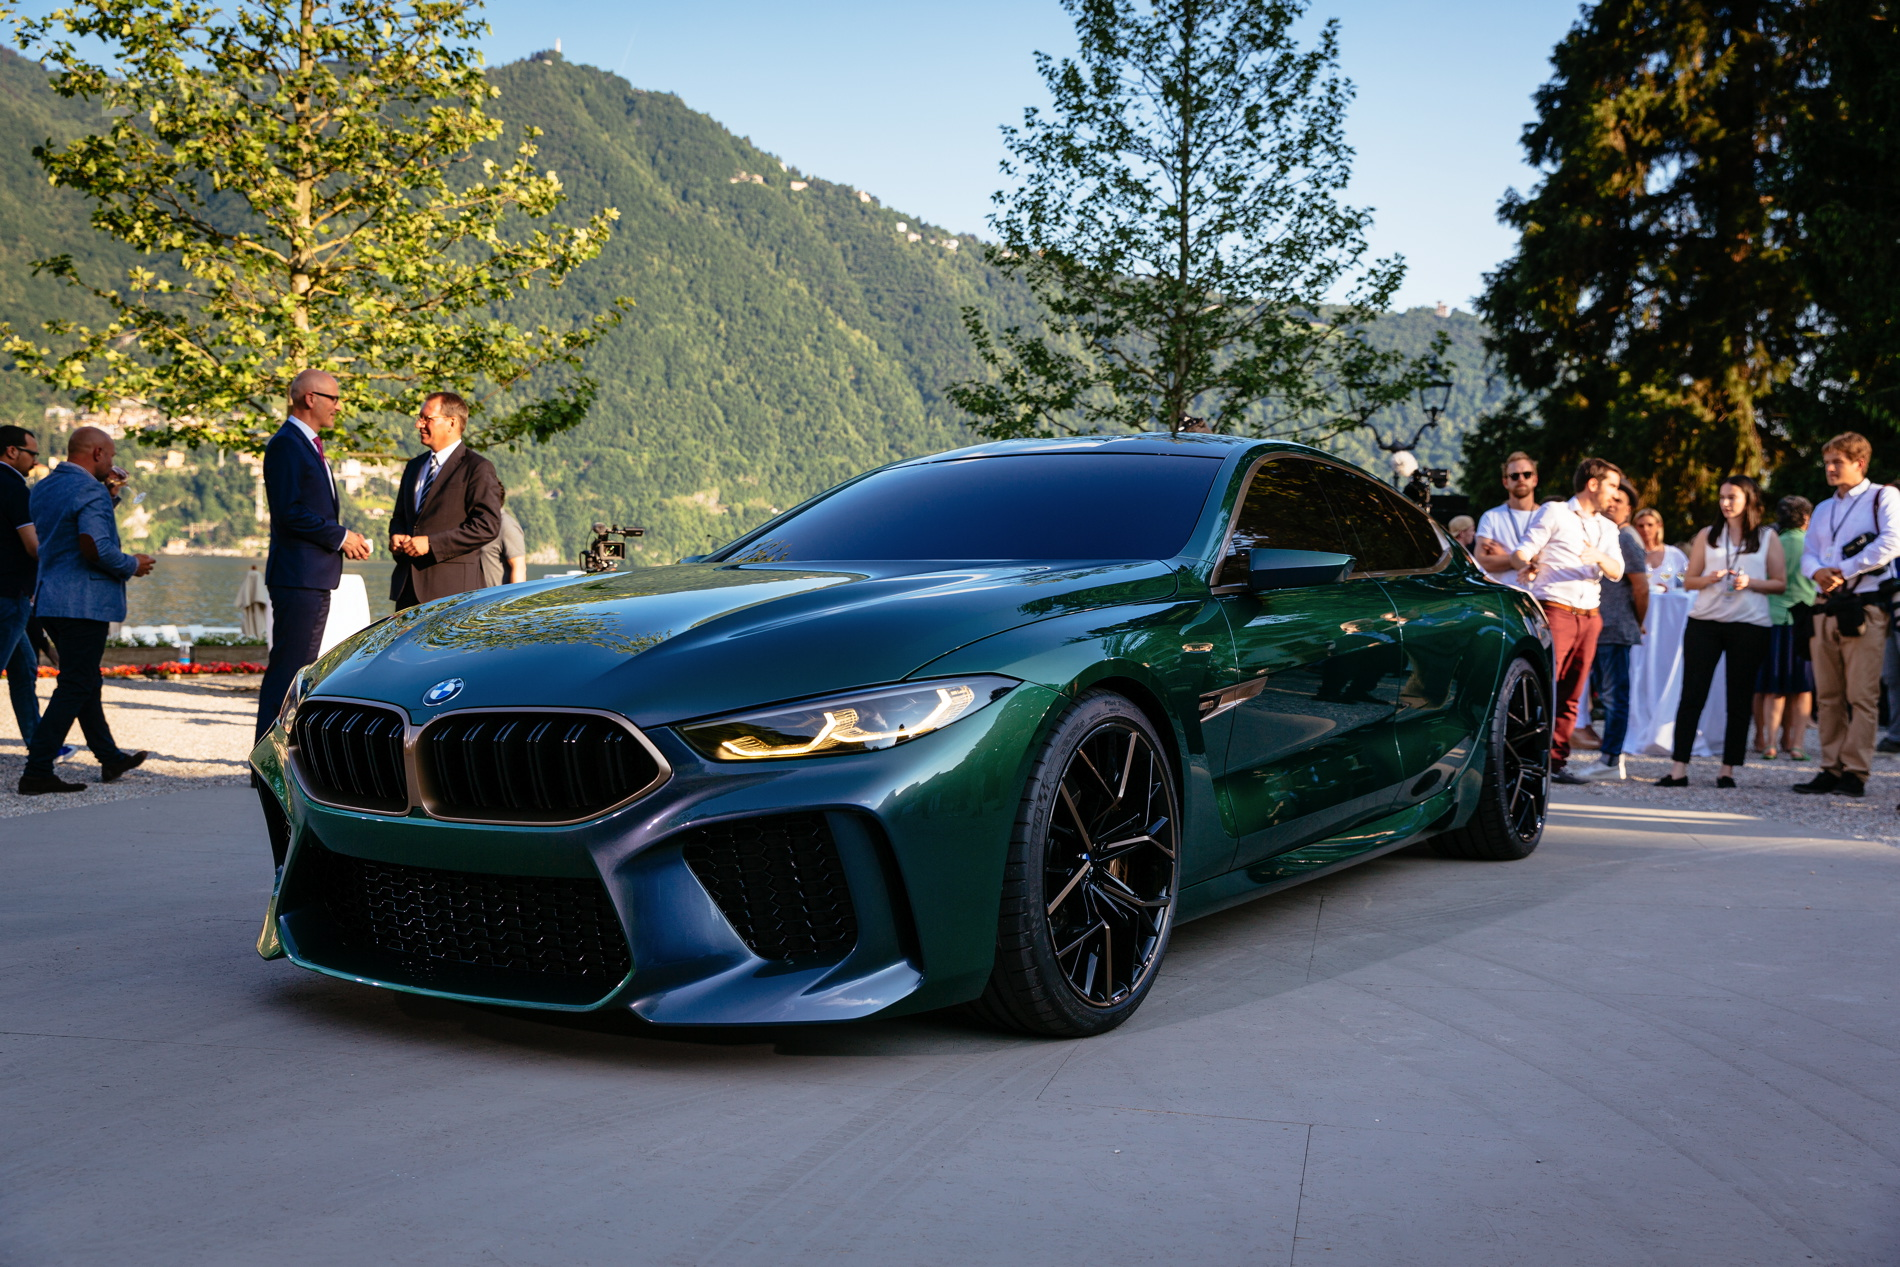 video the bmw m8 gran coupe concept at villa d 39 este 2018. Black Bedroom Furniture Sets. Home Design Ideas